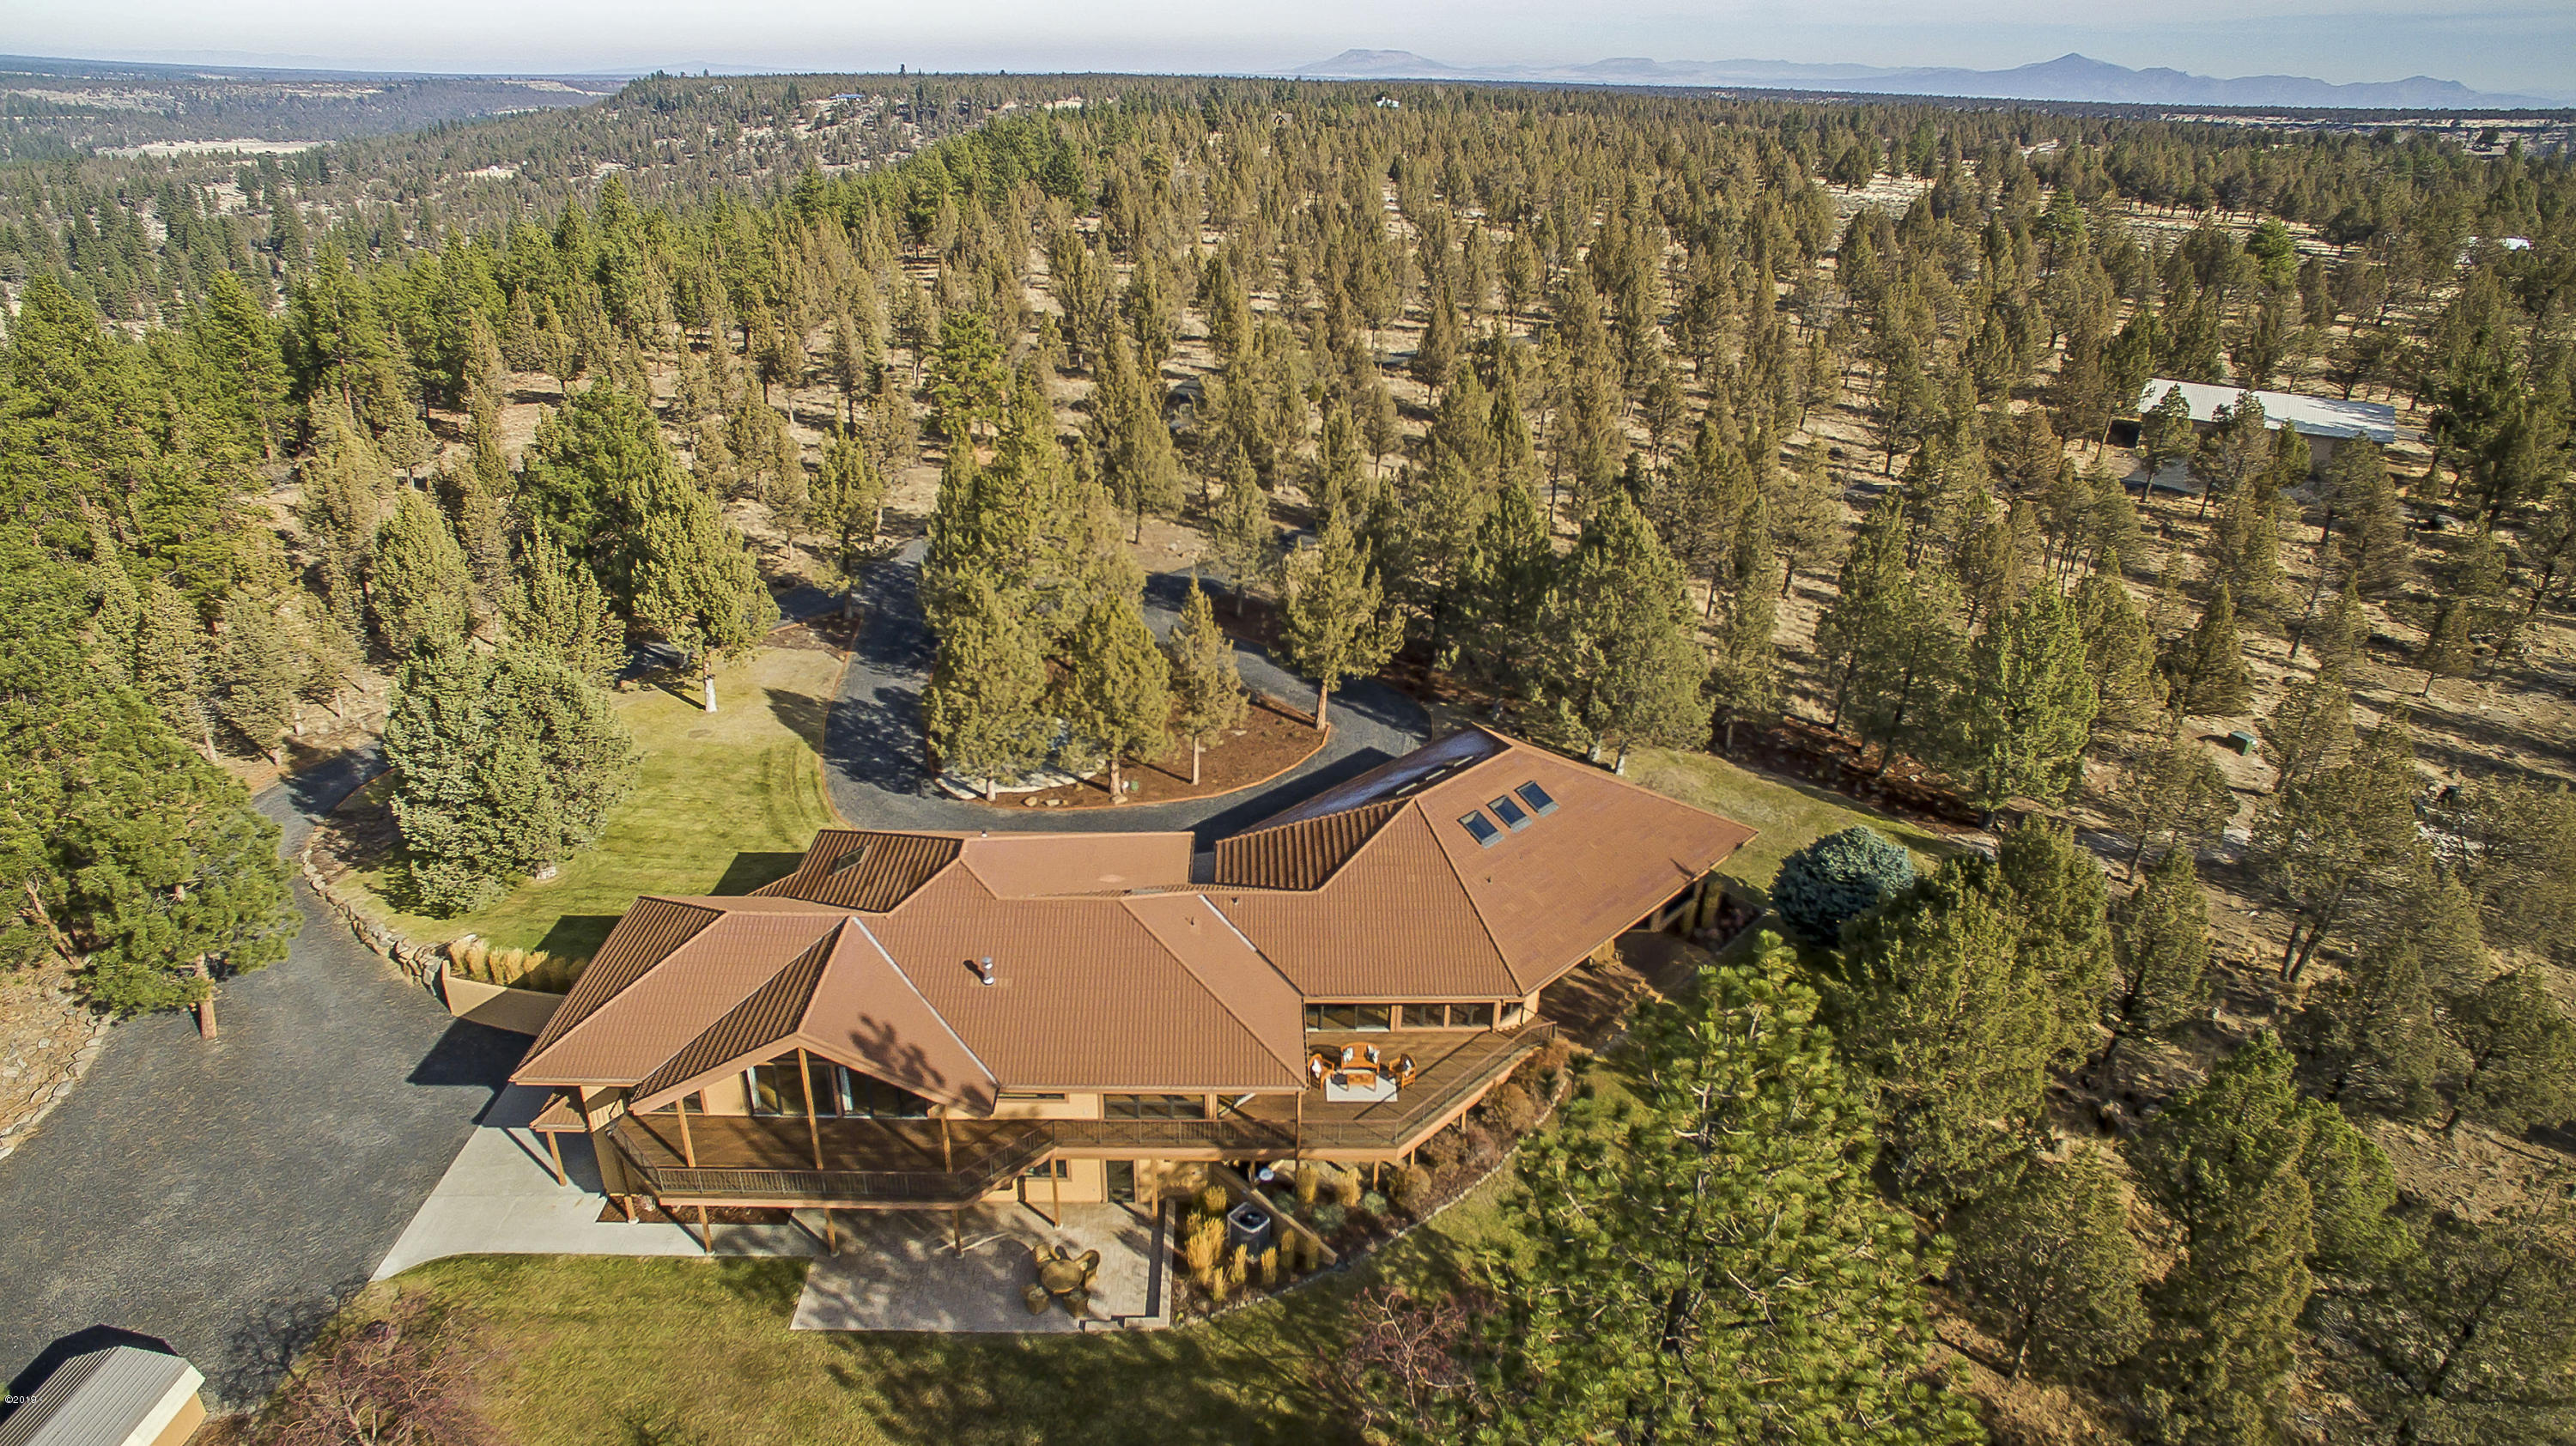 17900 Mountain View Rd, Sisters, OR 97759 - Aerial